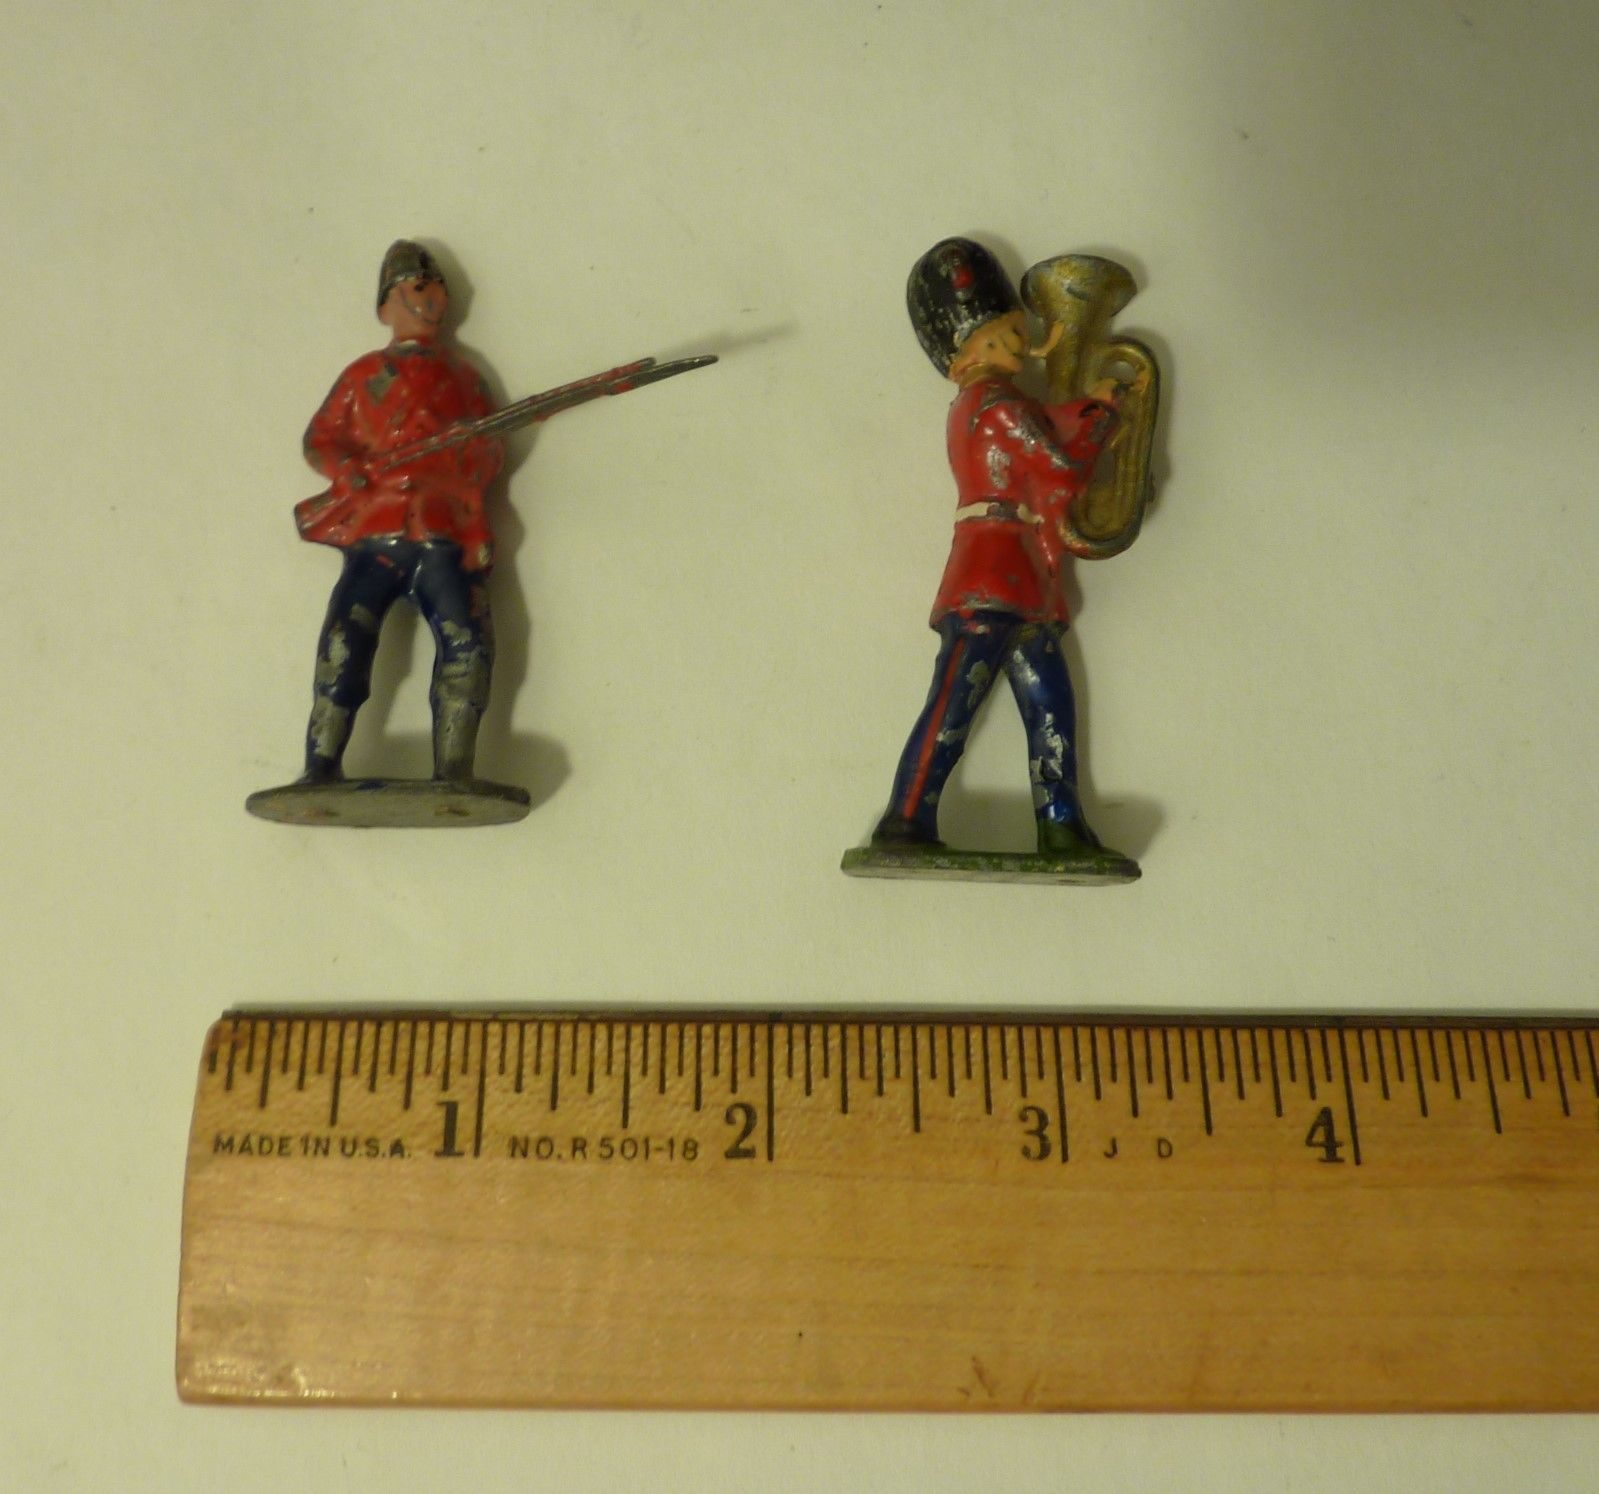 England Soldier Coldstream British Guards with Musket and Euphonium Toy Set